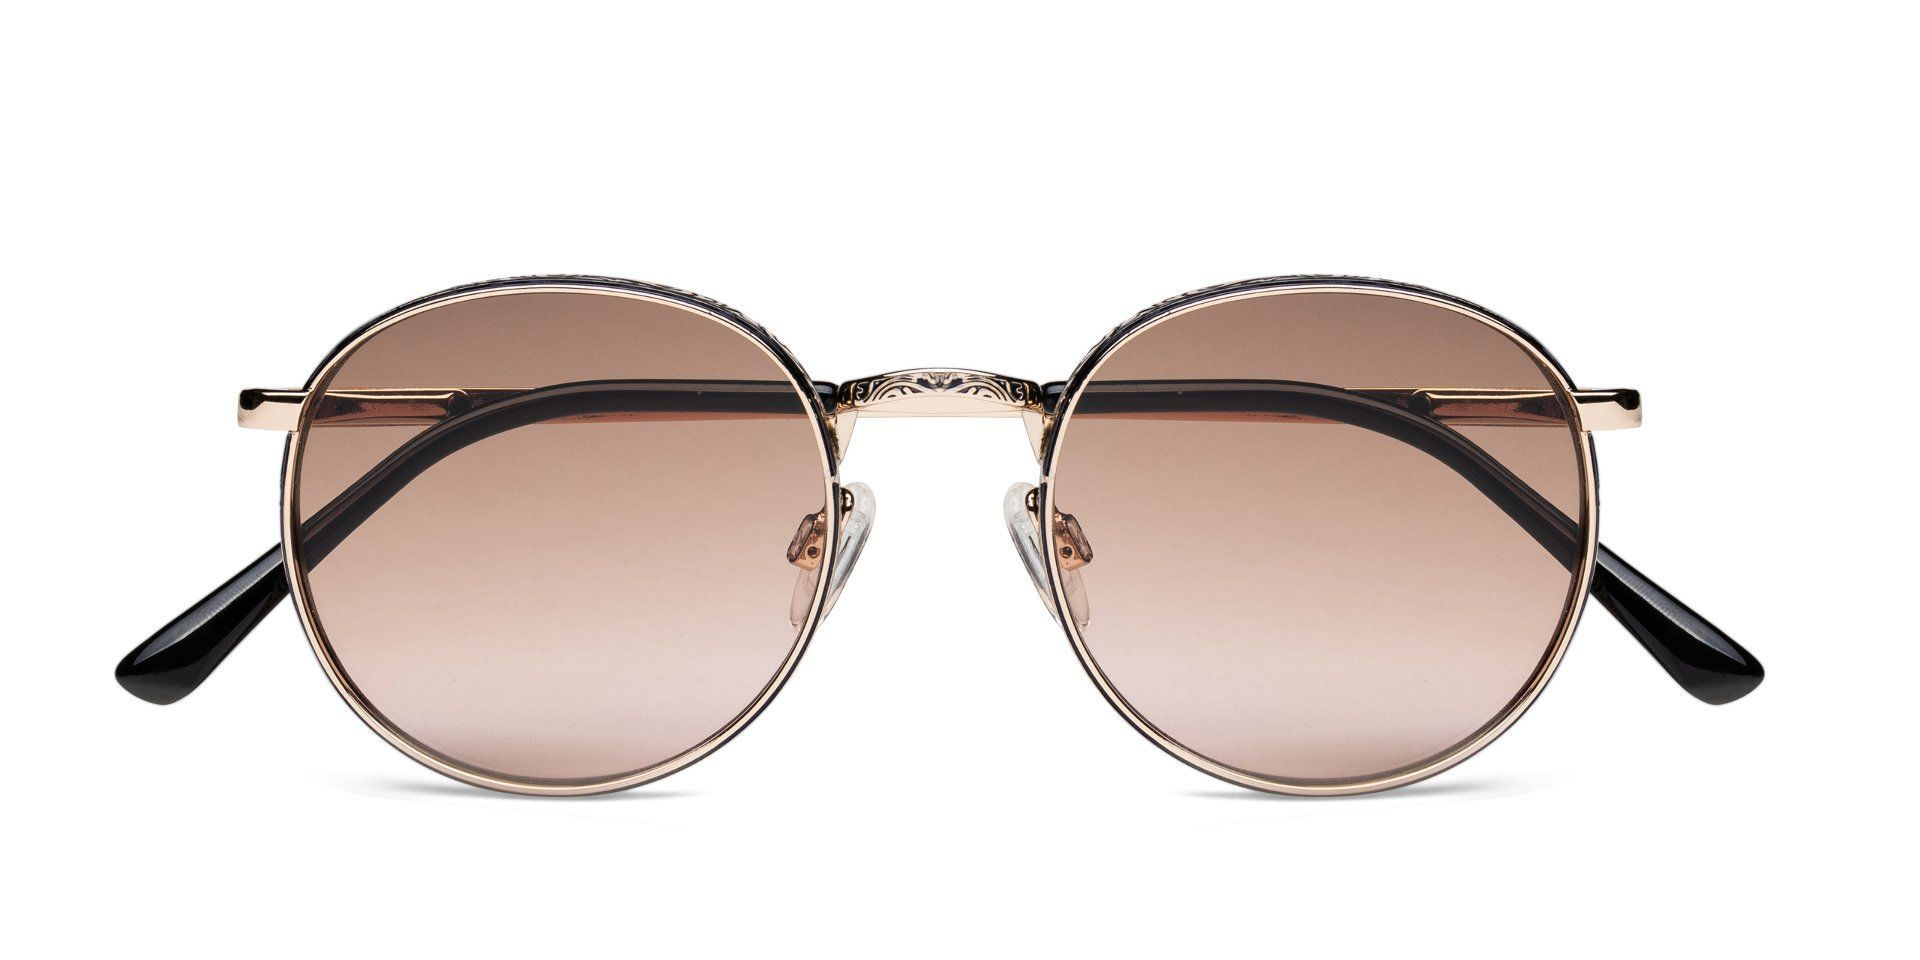 FRAME Shiny Light Gold LENS Brown to Pink